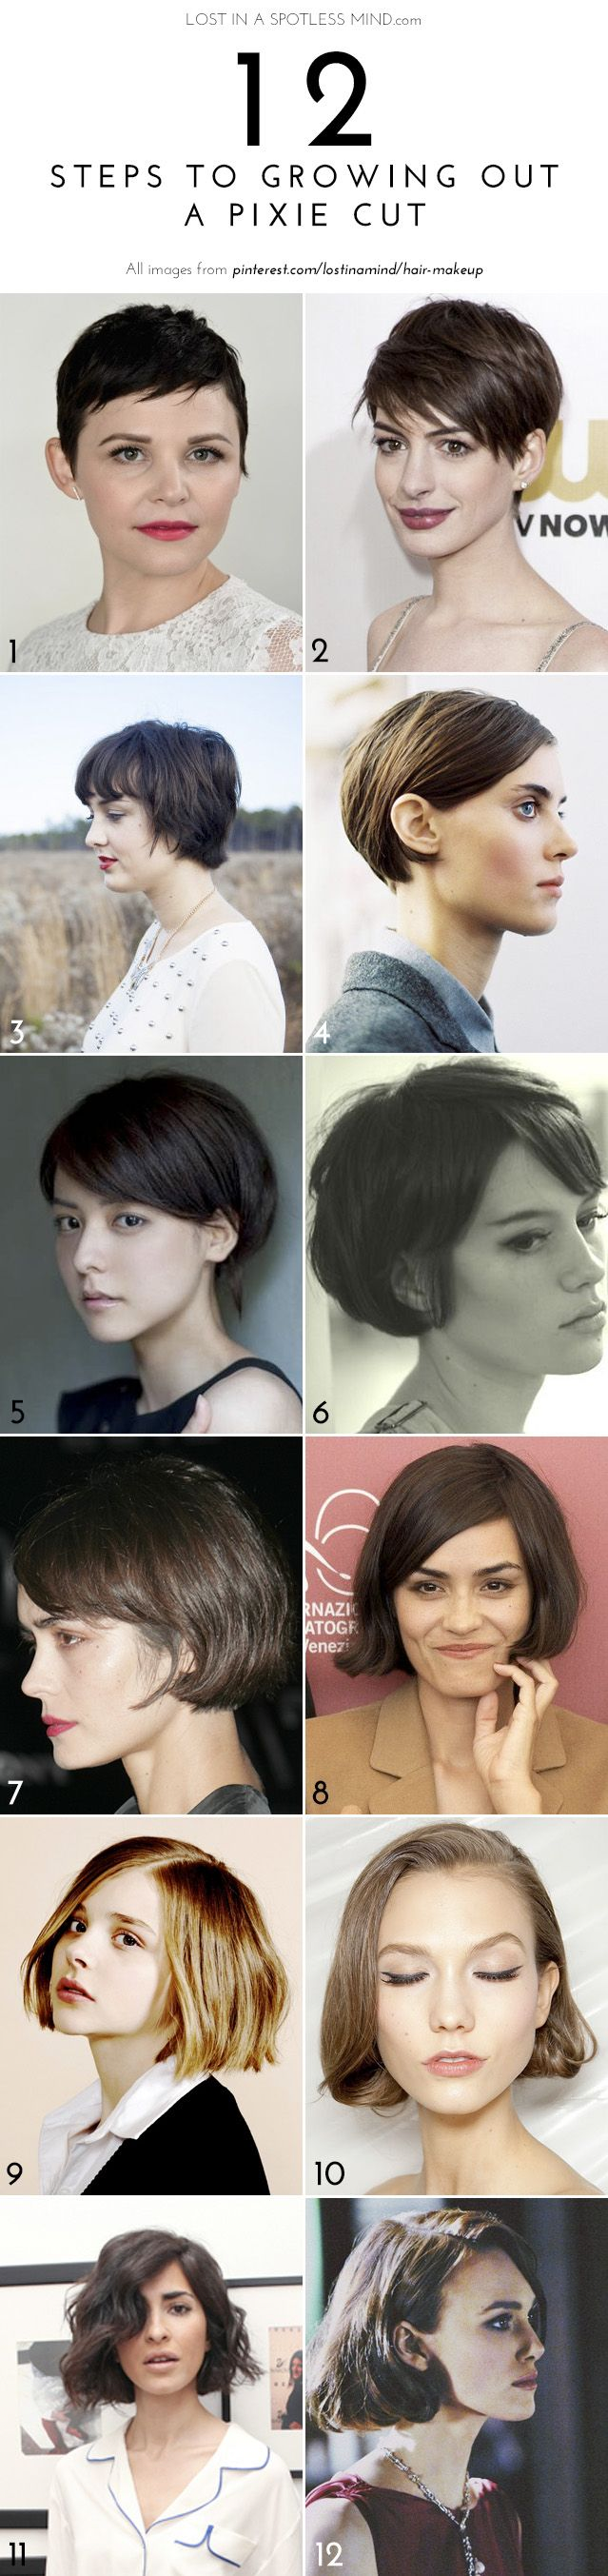 12 Steps to Growing Out a Pixie Cut.